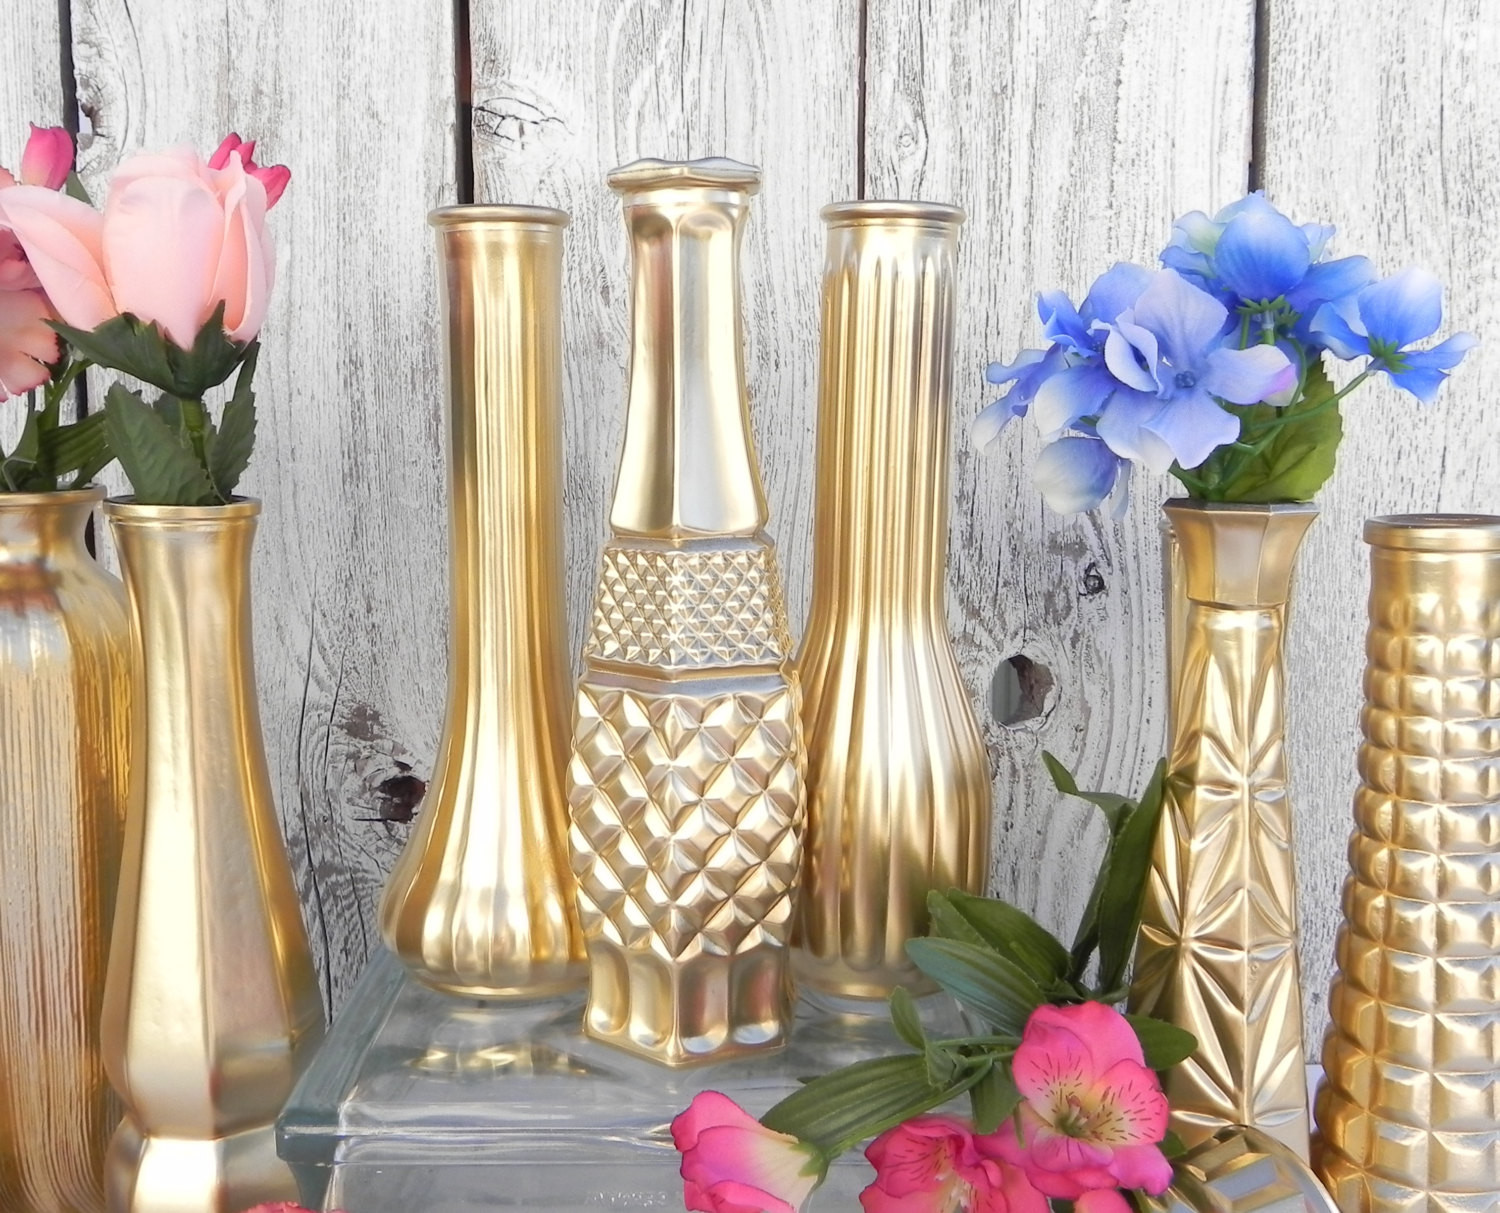 white bud vases bulk of vases design ideas buy glass flower and bud vases in bulk quick intended for bud vases bulk we all know everyones judgment will be different from one another similarly to